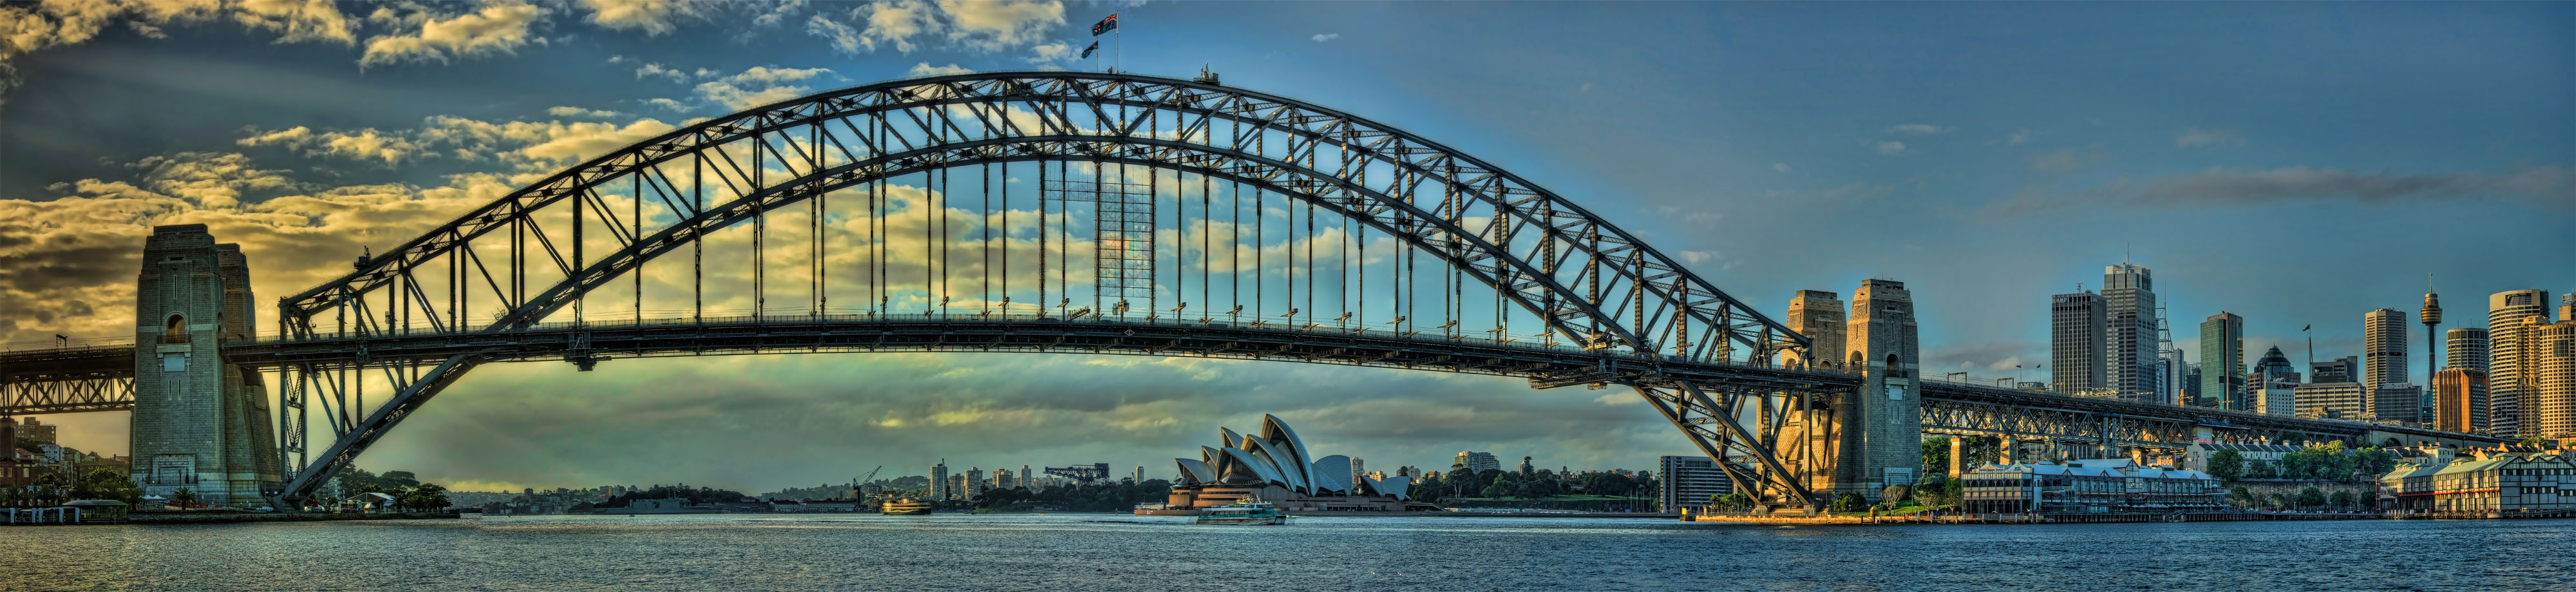 Sydney Harbour Bridge Panoramic in HDR